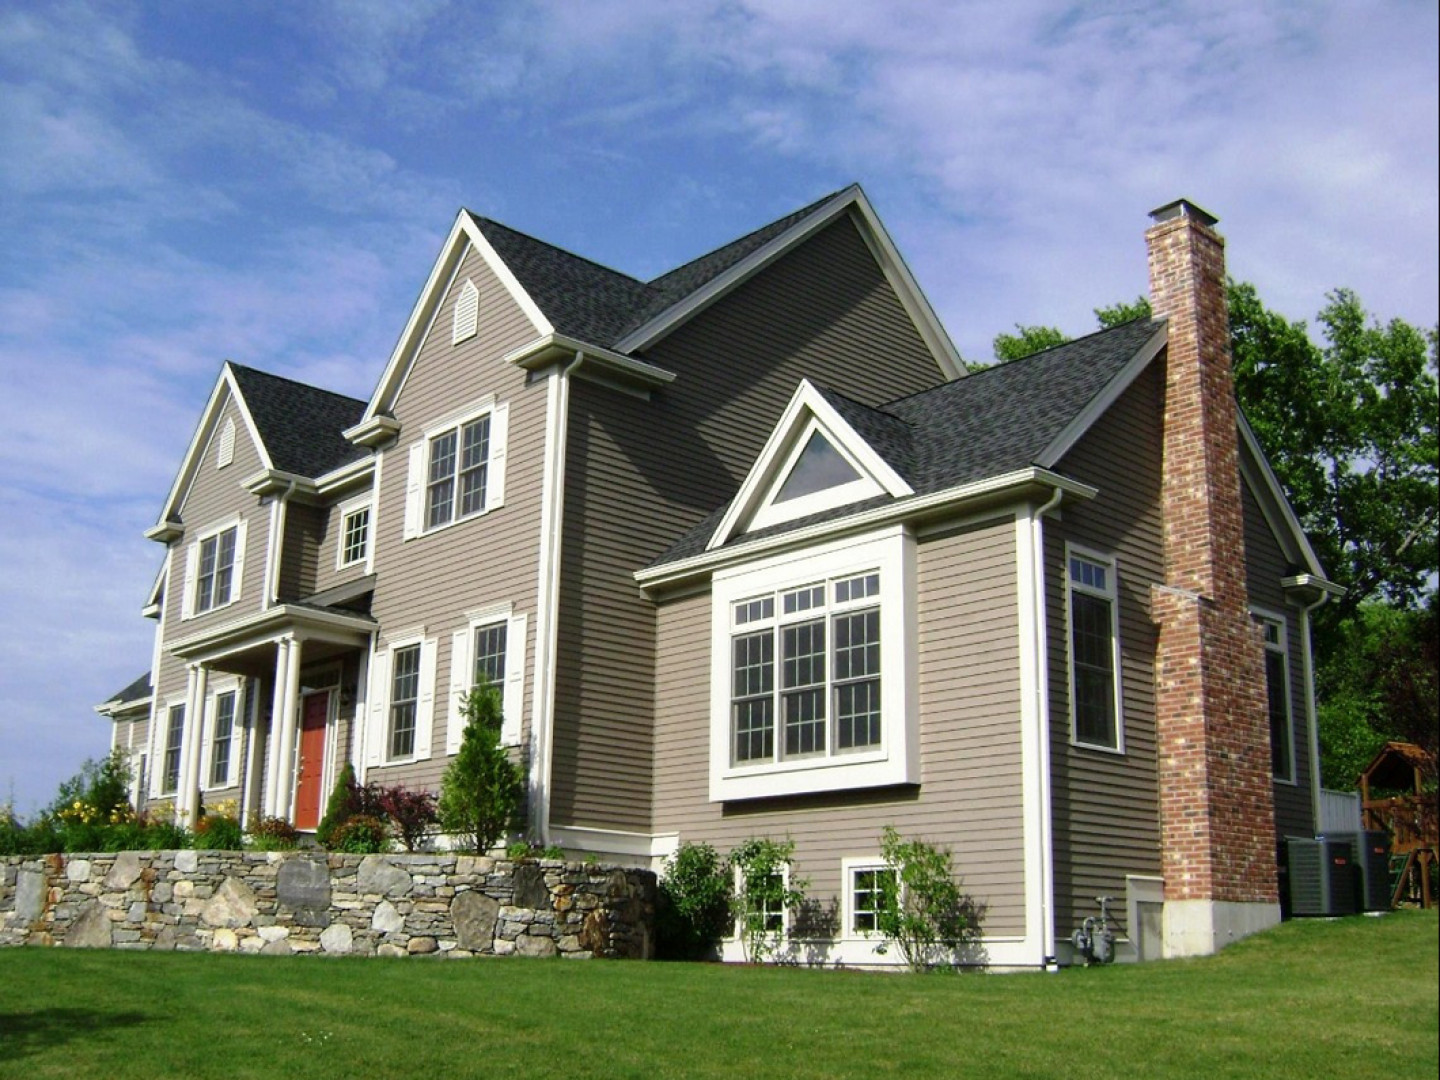 Equip Your Property With Stylish and Durable Siding